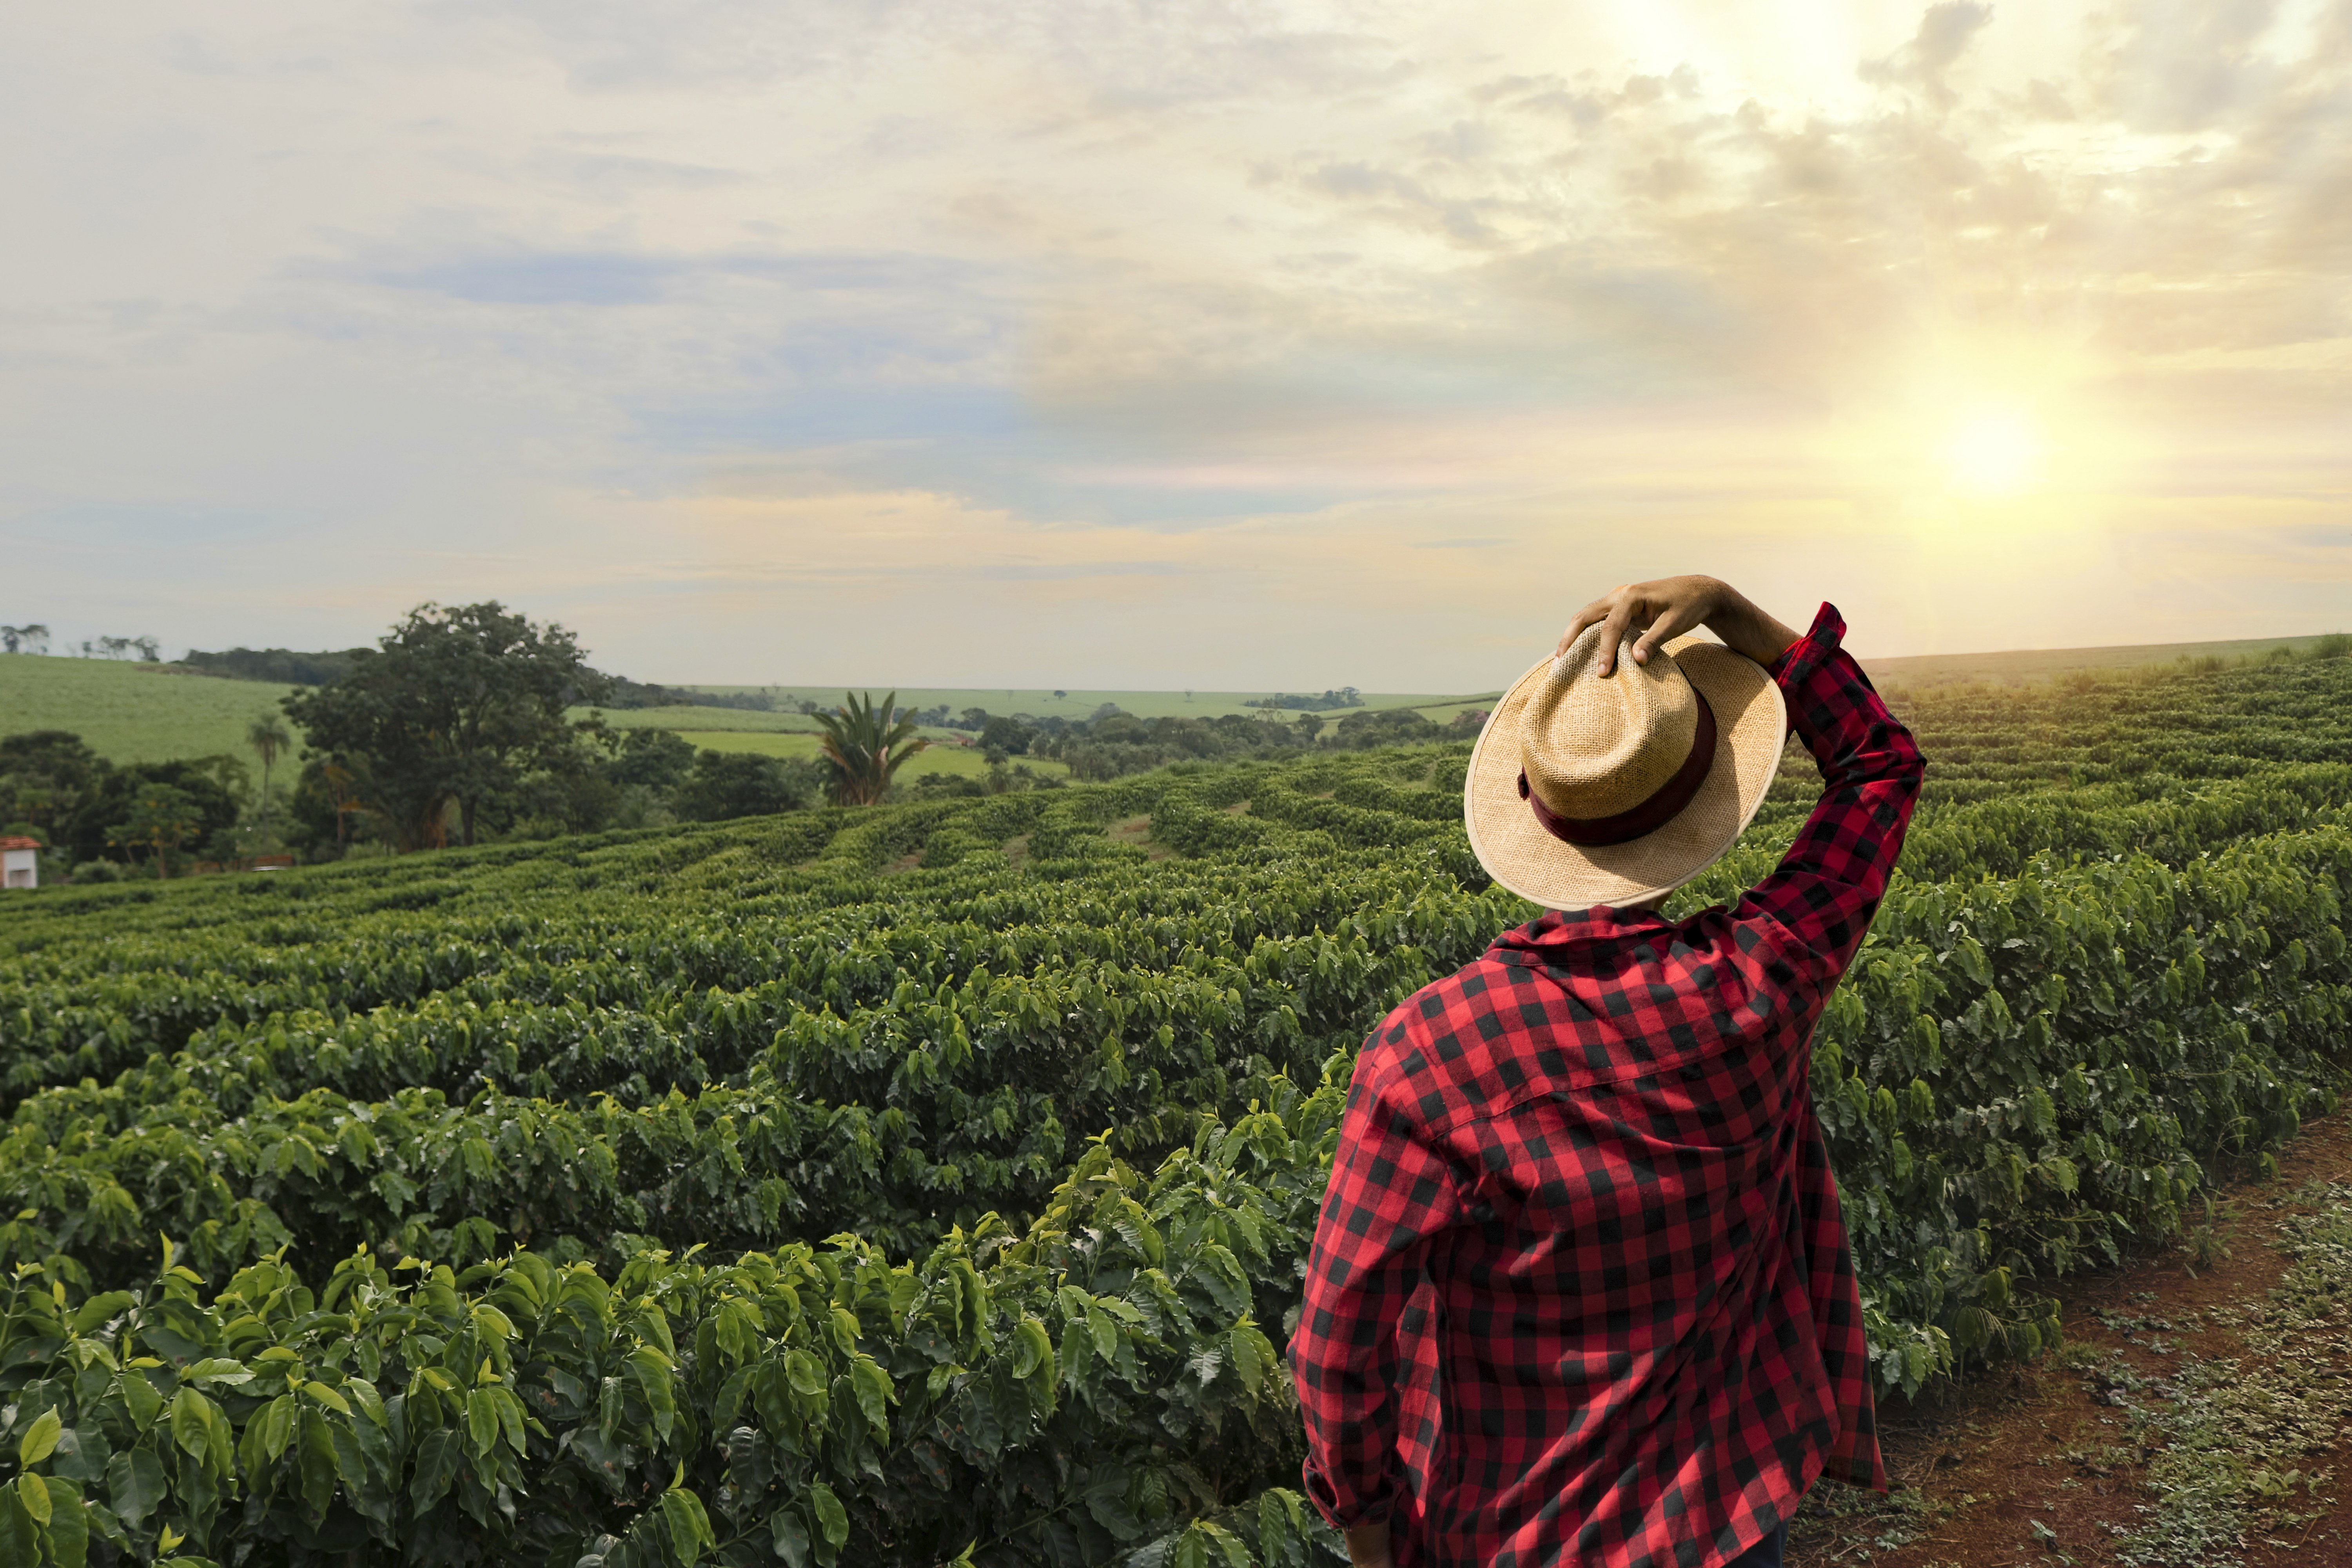 Farmer working on coffee field at sunset outdoor | Photo: Shutterstock.com